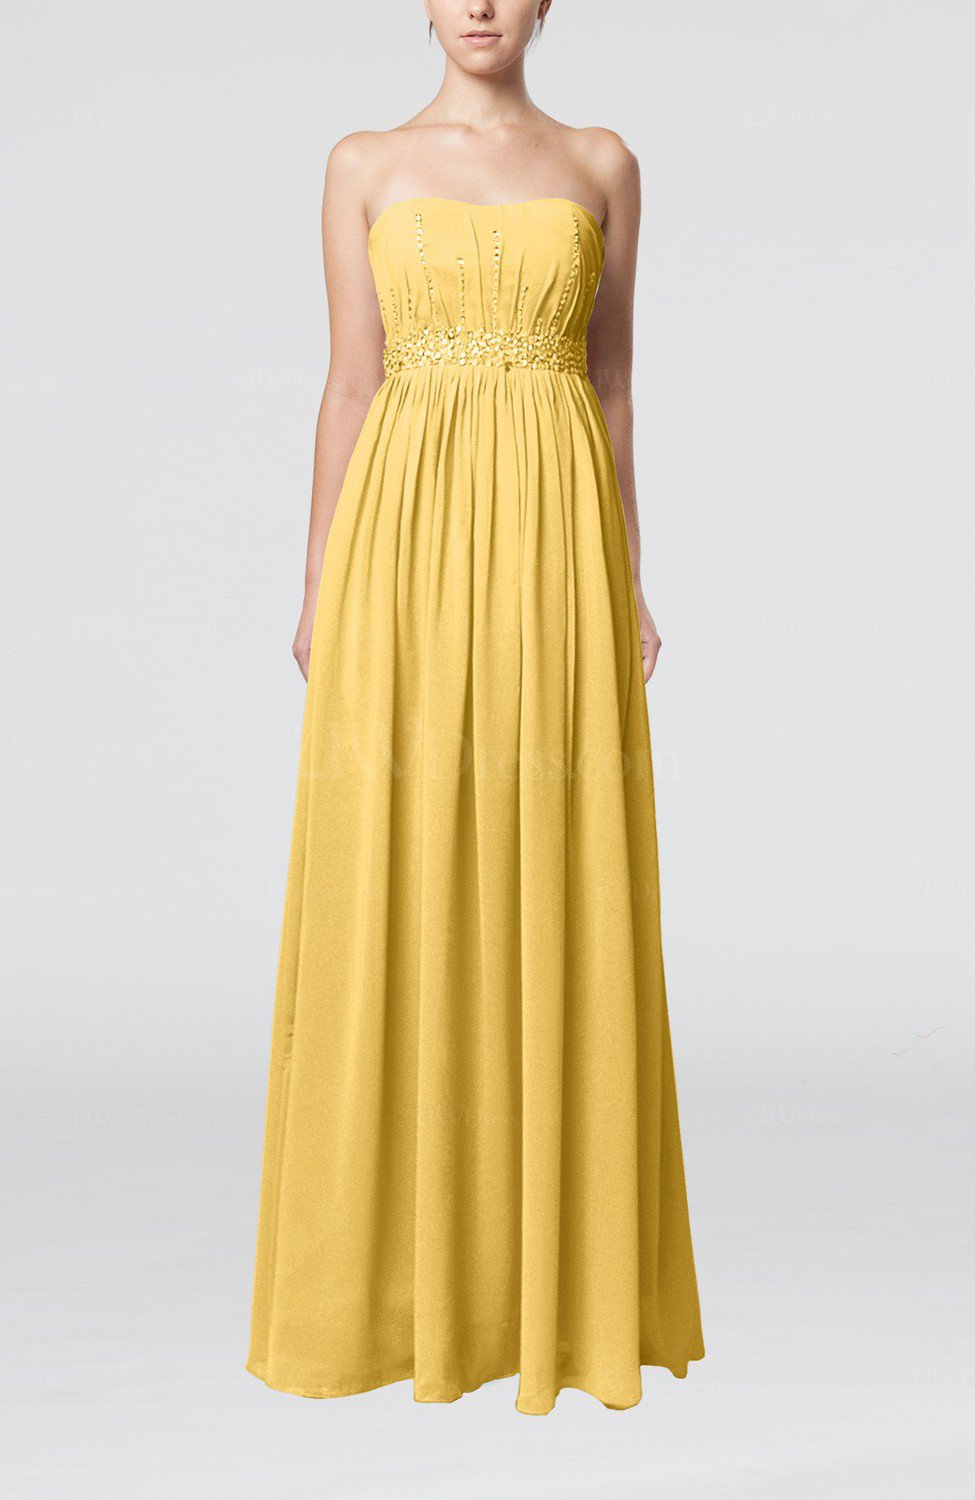 Gold Elegant Strapless Sleeveless Chiffon Sequin Evening